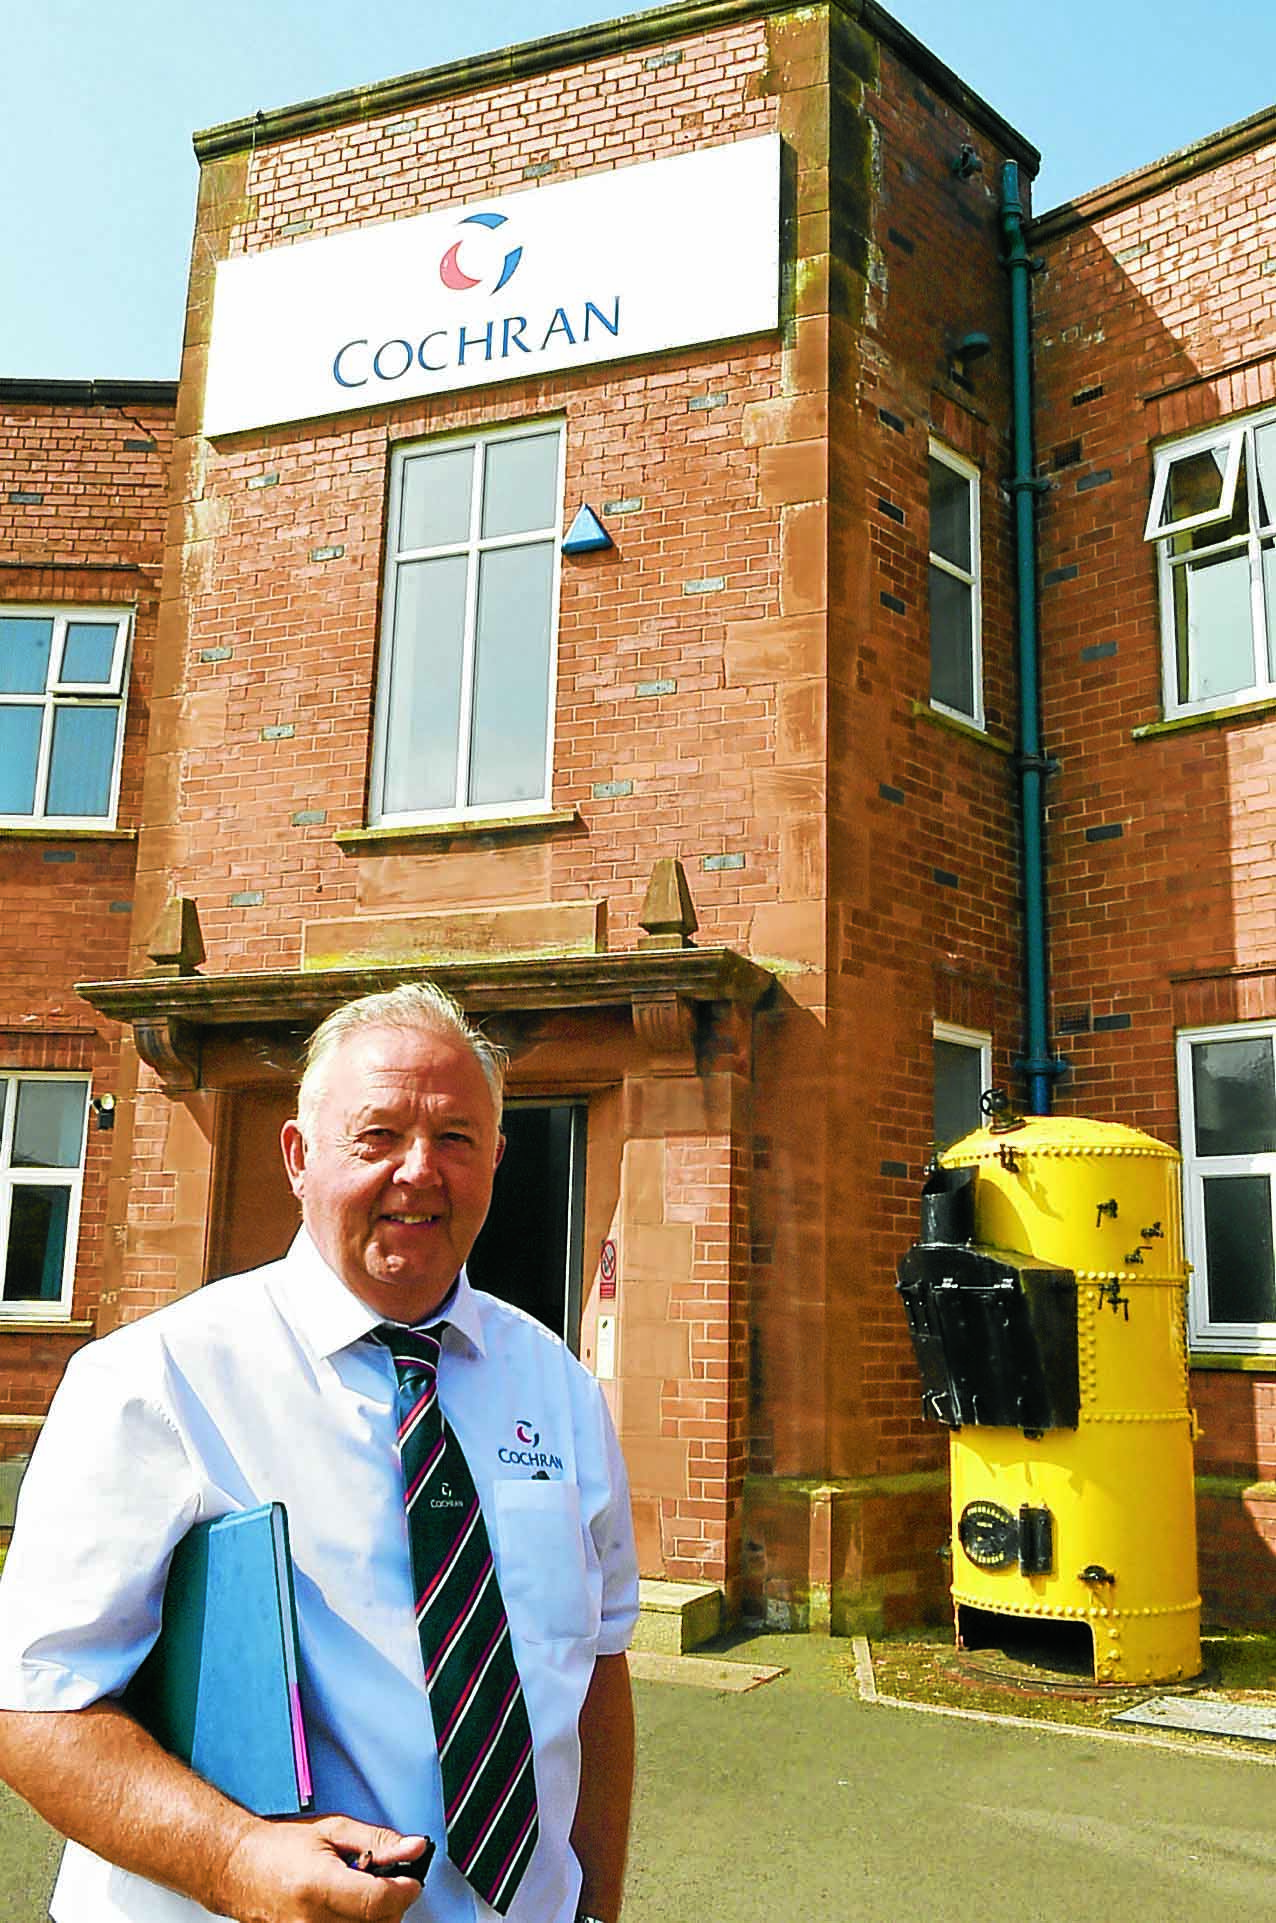 Boiler firm shares story in new display